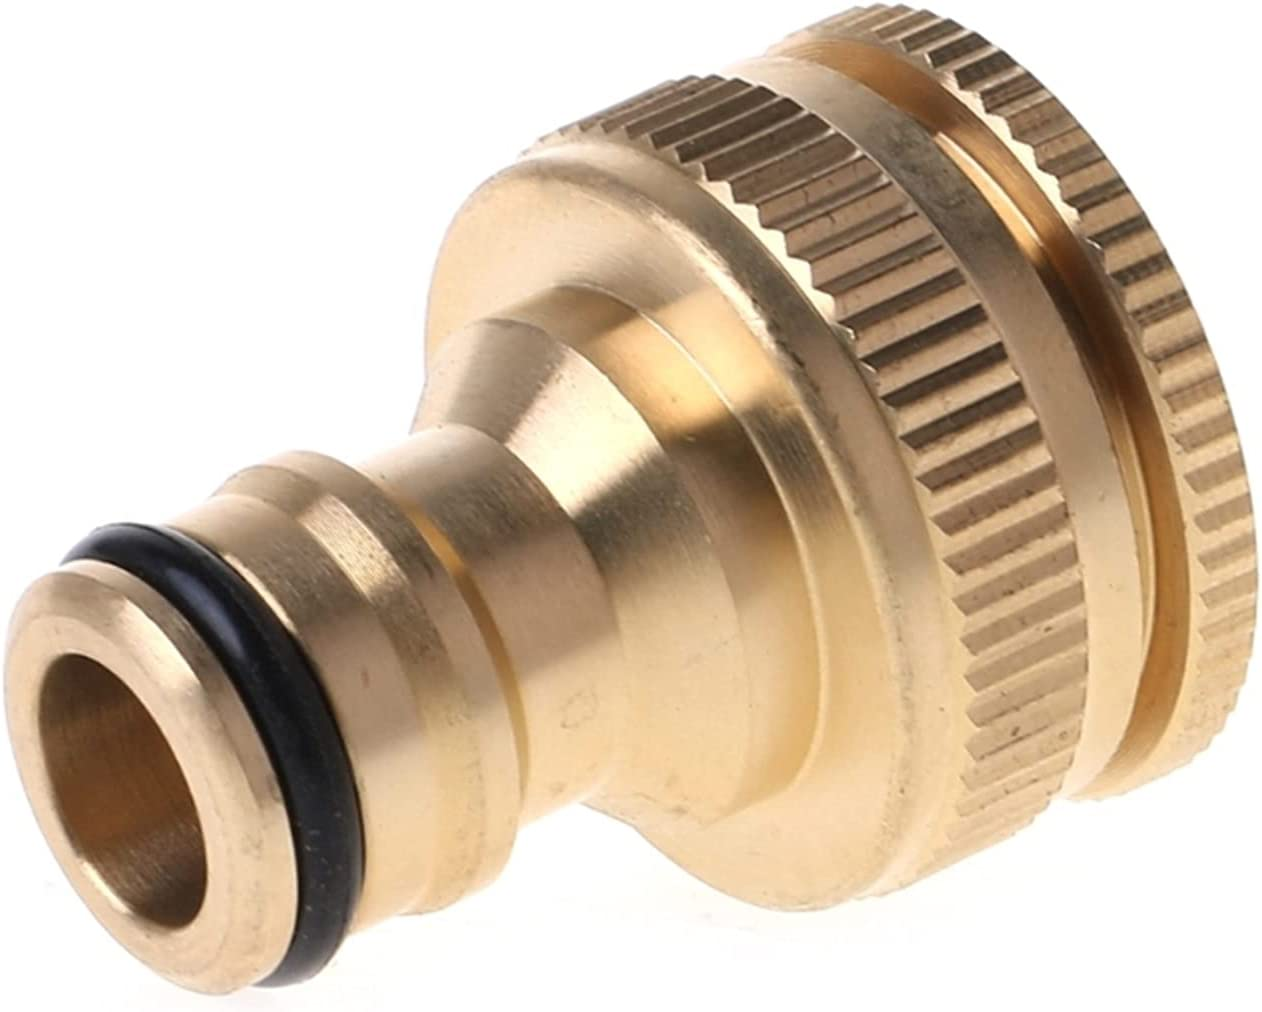 Zkenyao-Brass Connector Brass Hose Tap 4 Washing favorite 6 Mac Challenge the lowest price of Japan ☆